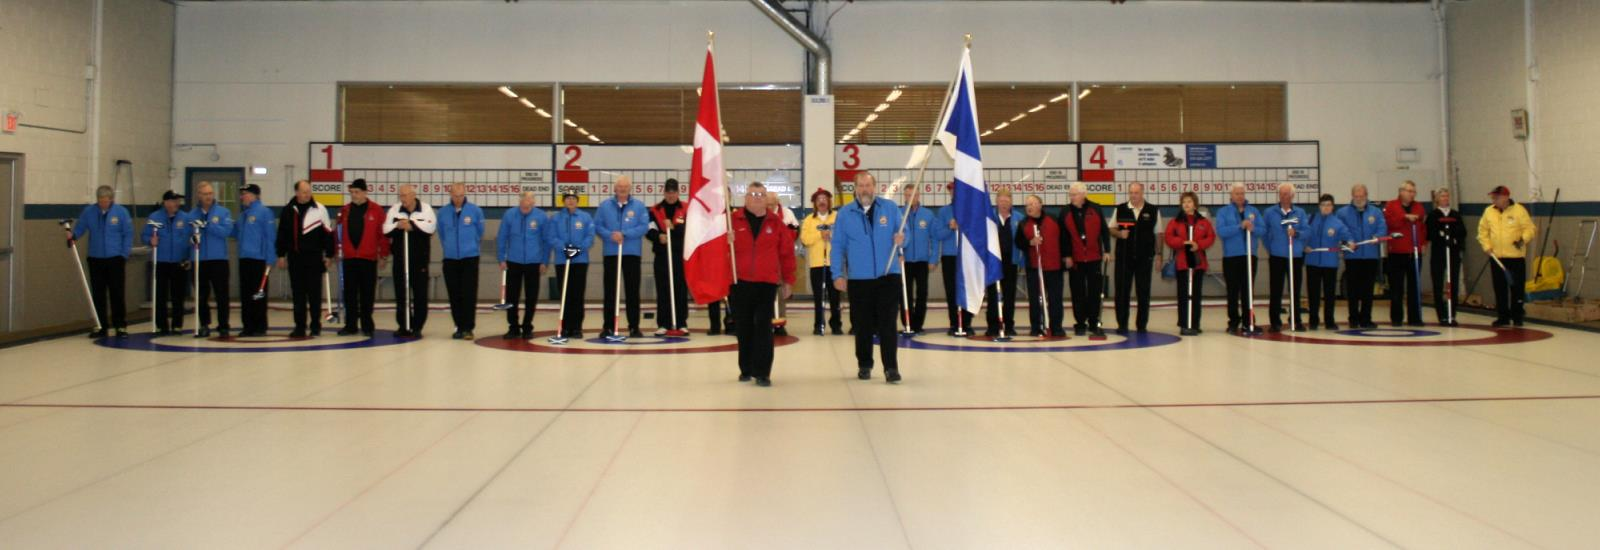 2016 Rotary Canada and Scotland Curling Tour